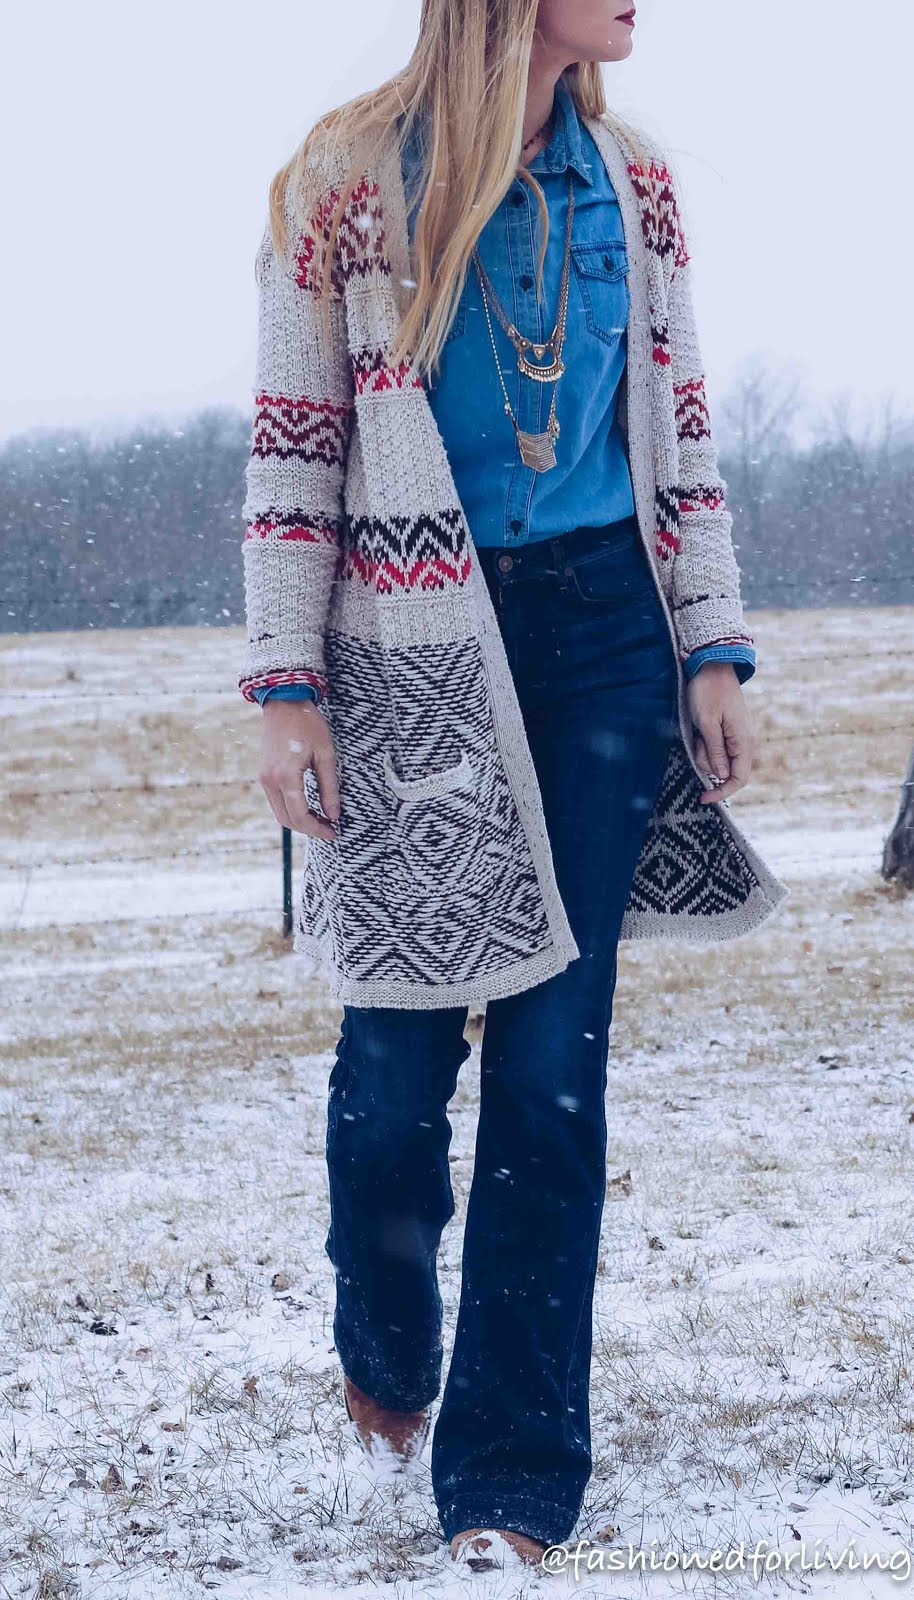 denim on denim outfit with long cardi and cowboy boots